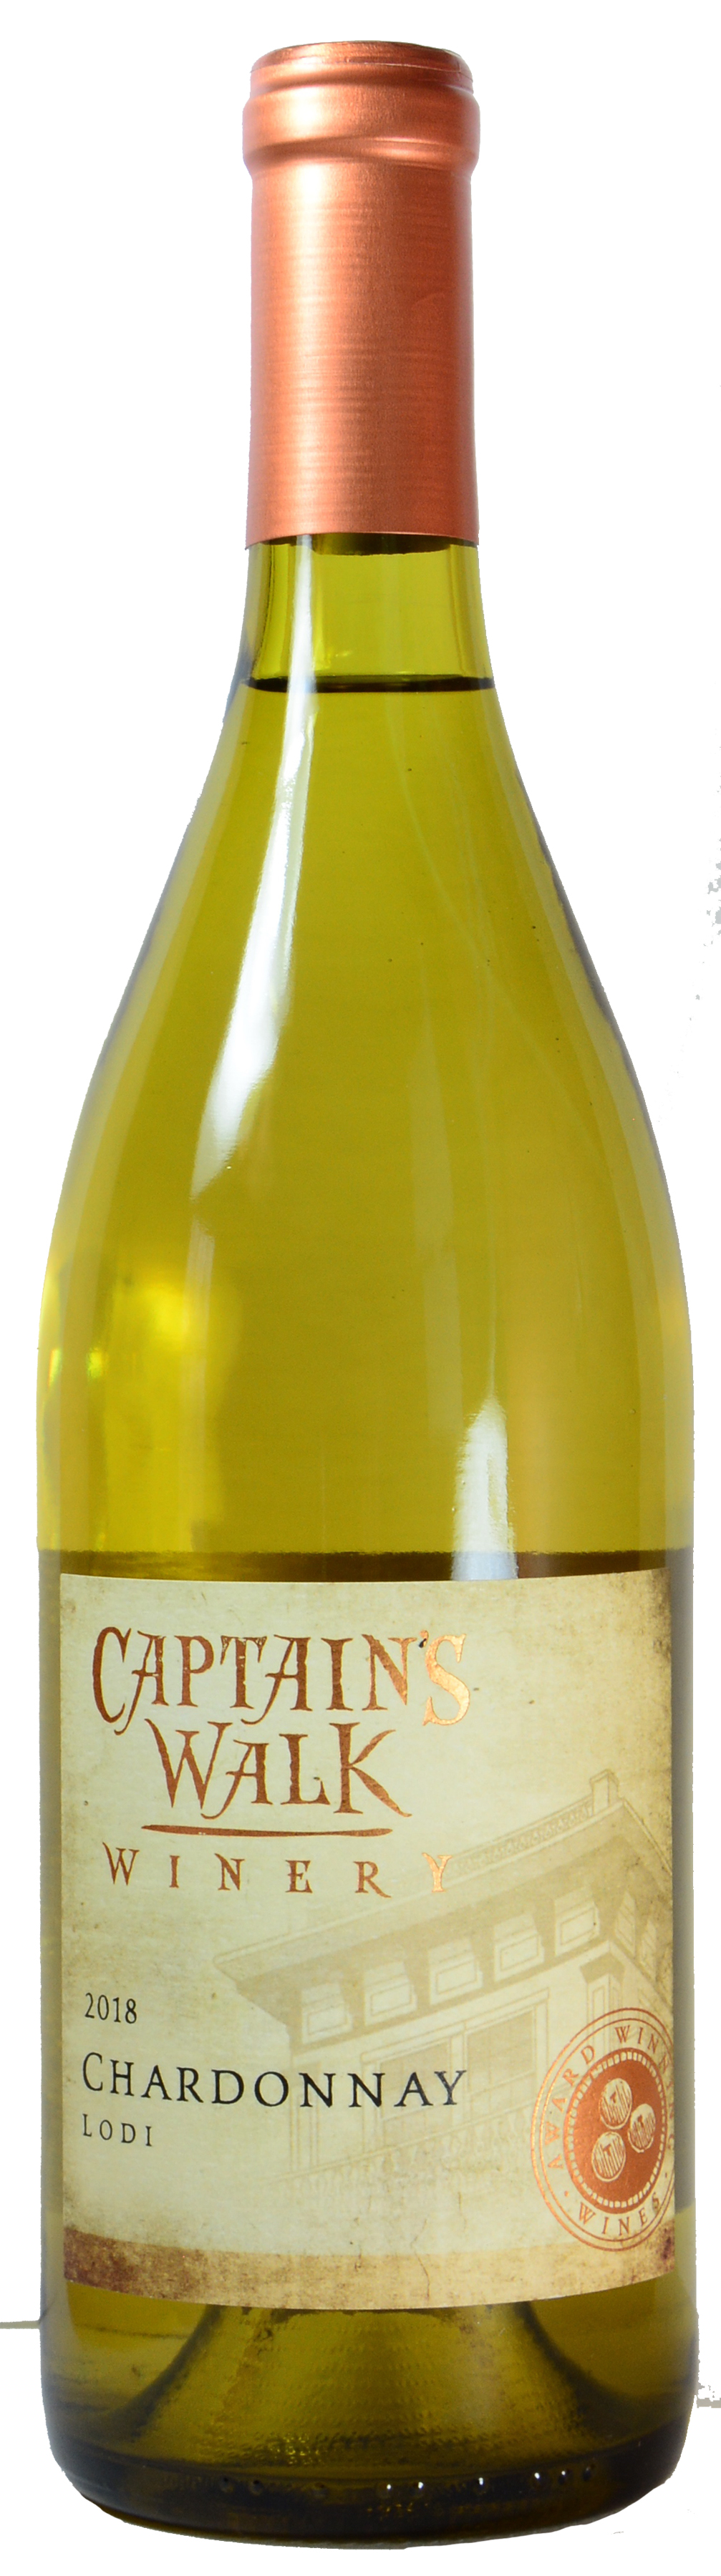 Captain's Walk Chardonnay